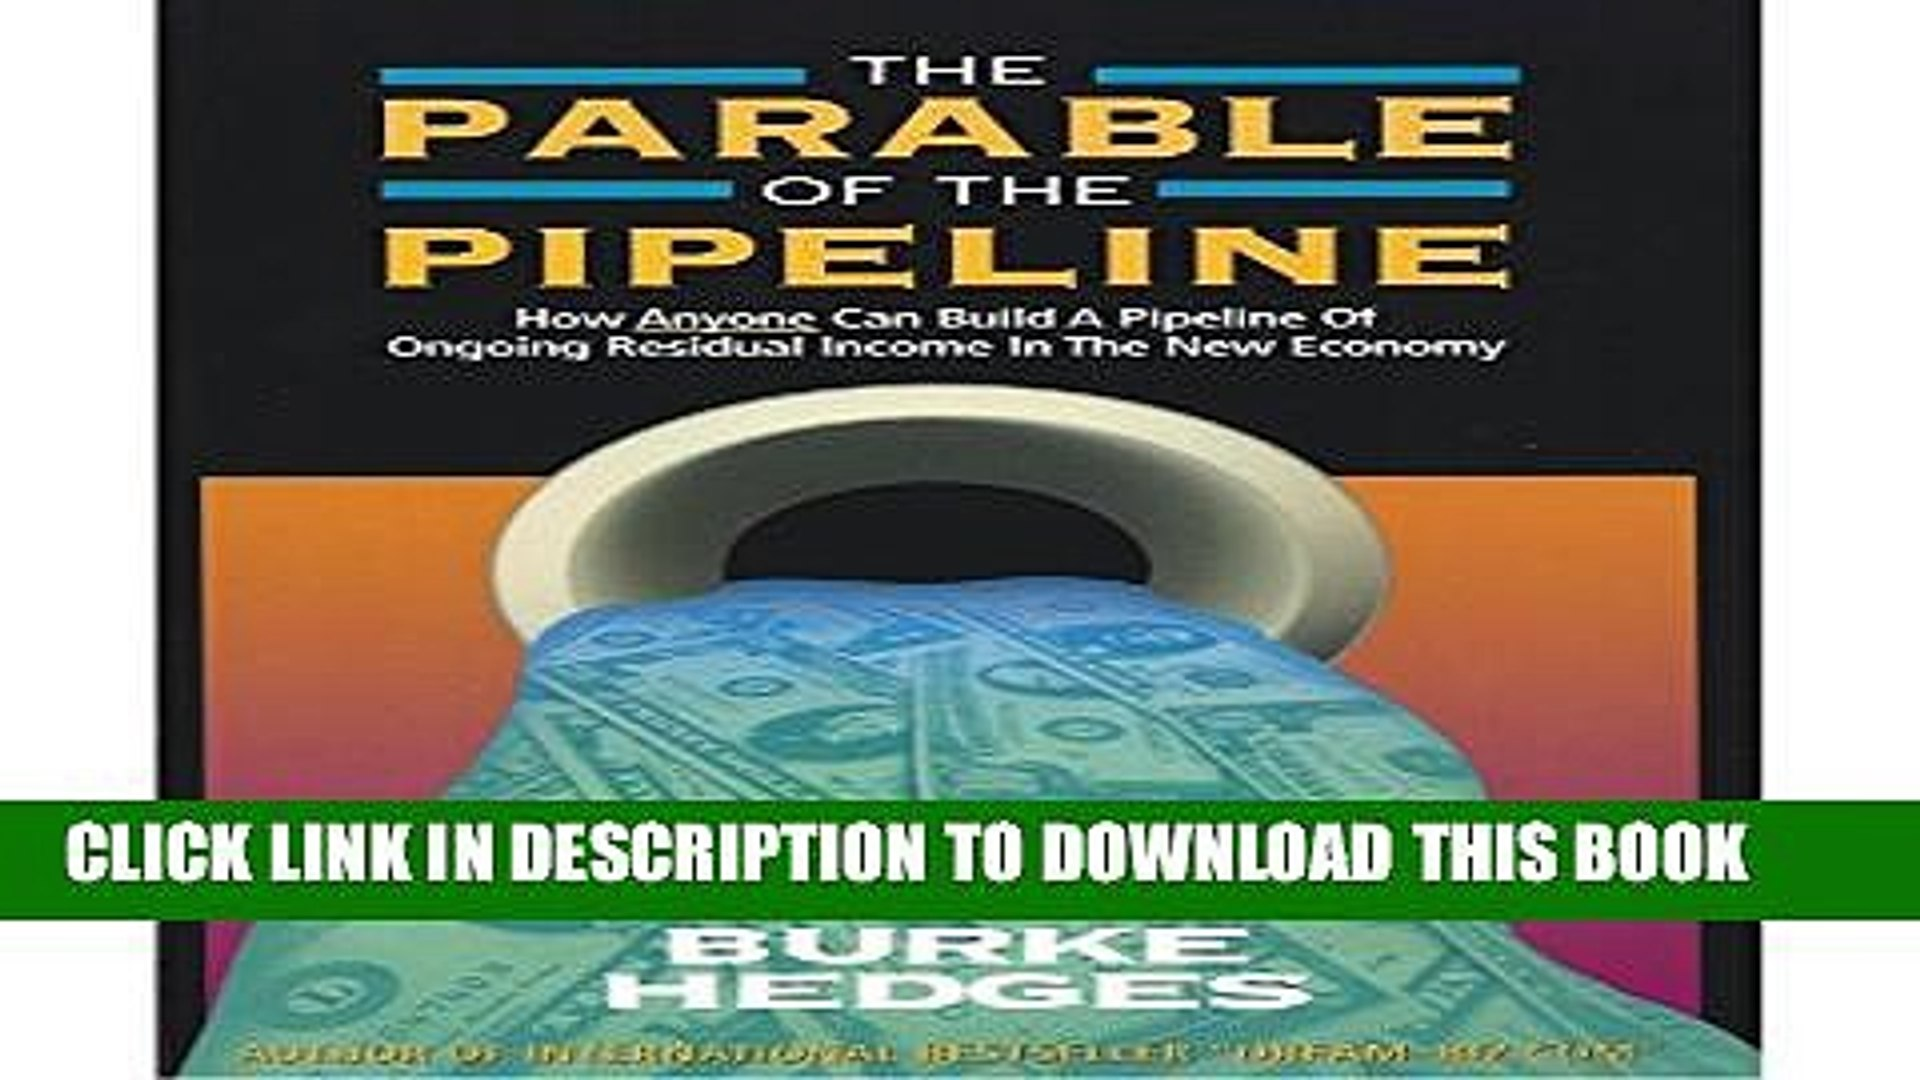 New Book The Parable Of The Pipeline: How Anyone Can Build A Pipeline Of Ongoing Residual Income